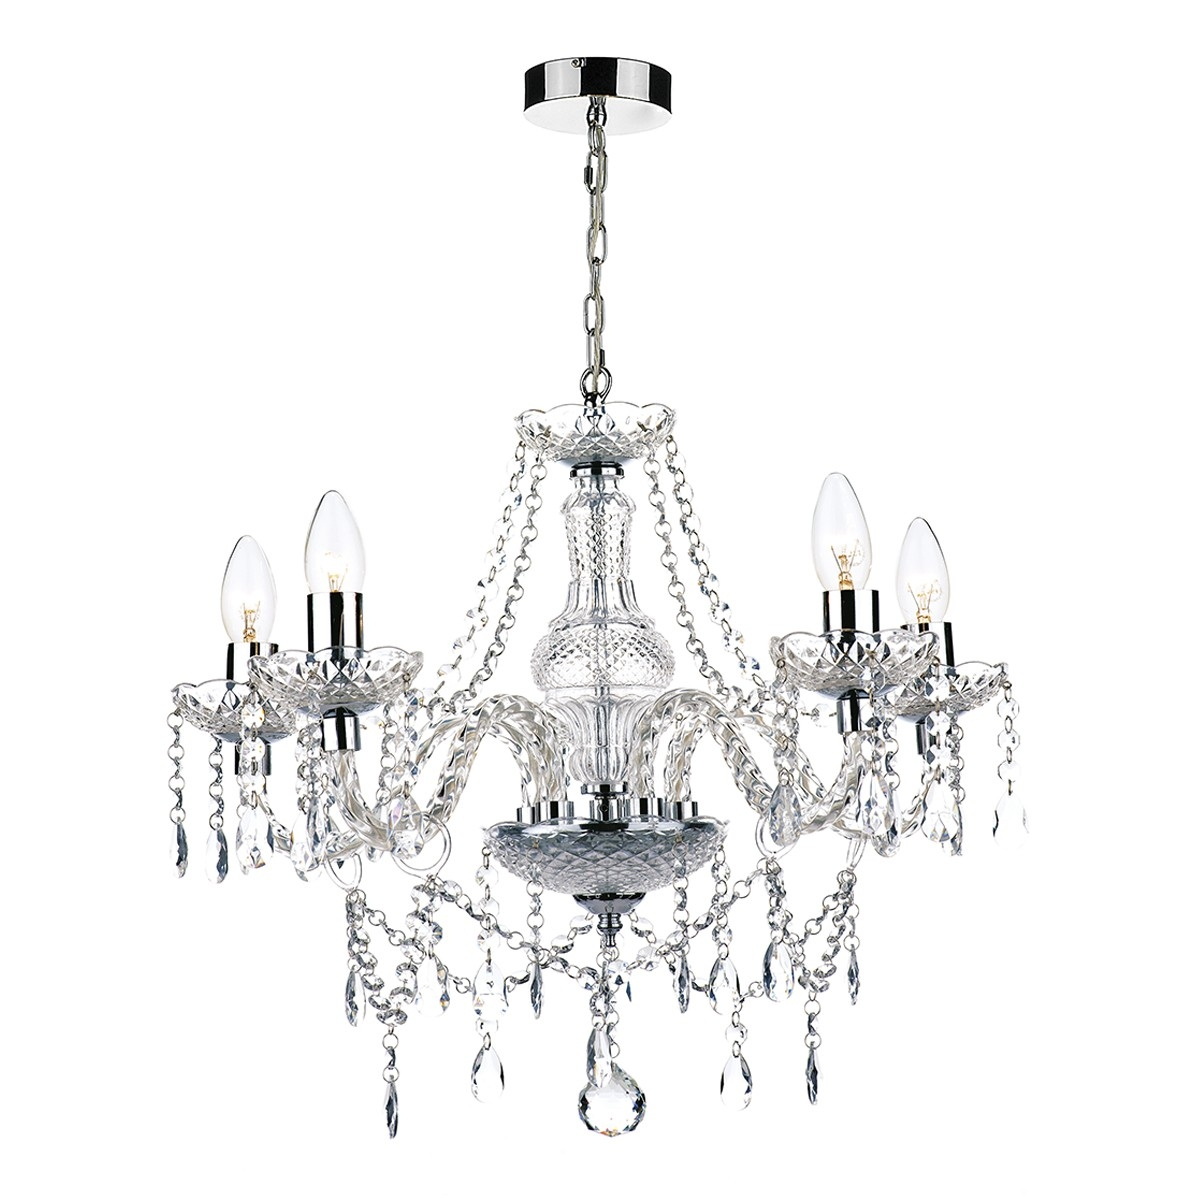 Popular Photo of Chrome And Glass Chandelier